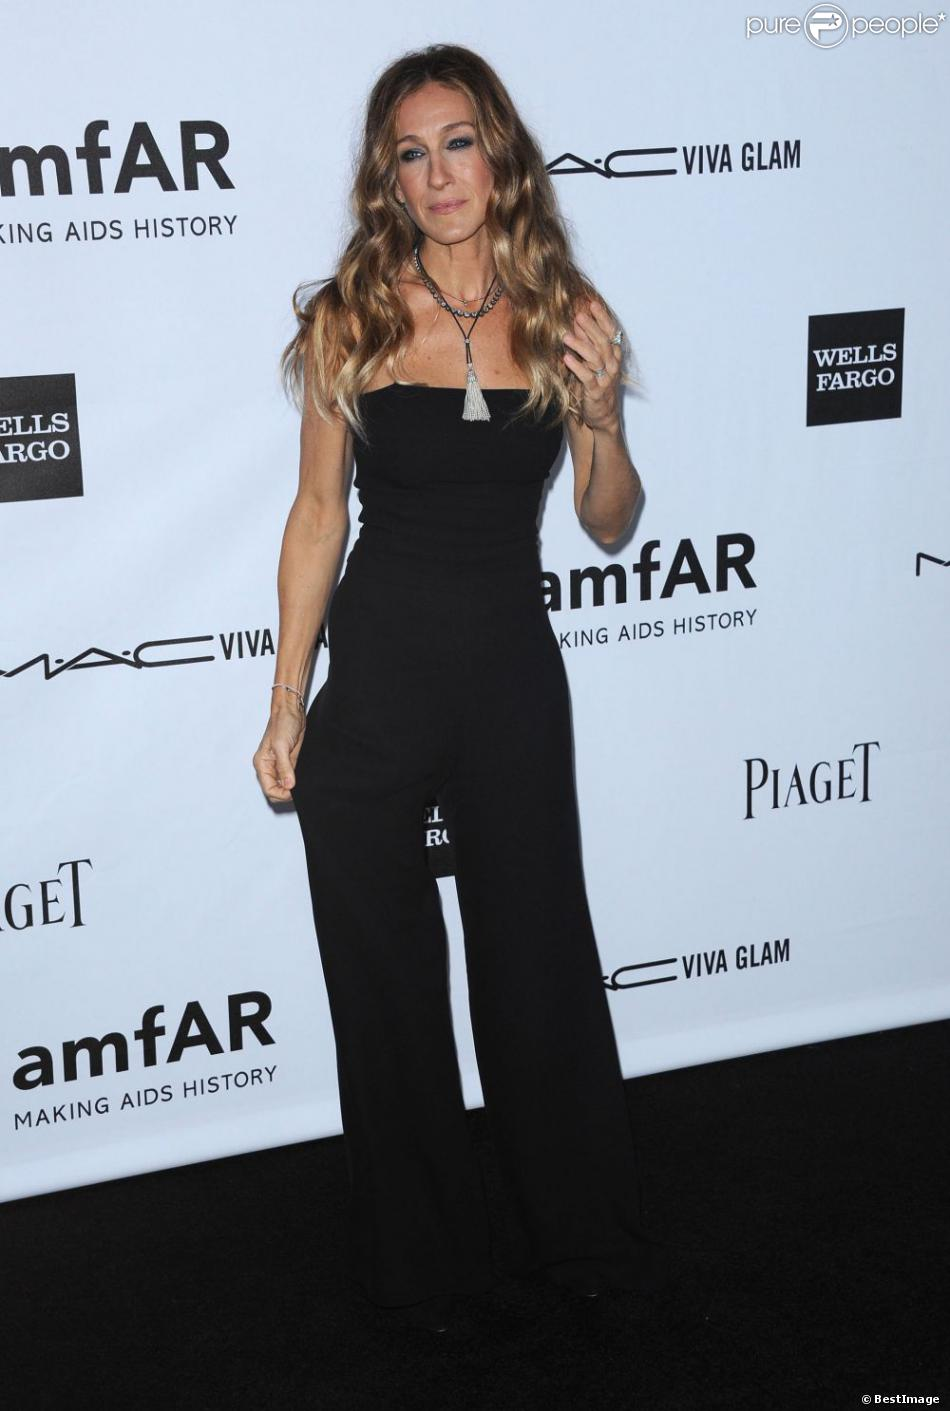 sarah jessica parker en combinaison noire la soir e de gala de l 39 amfar los angeles le 11. Black Bedroom Furniture Sets. Home Design Ideas